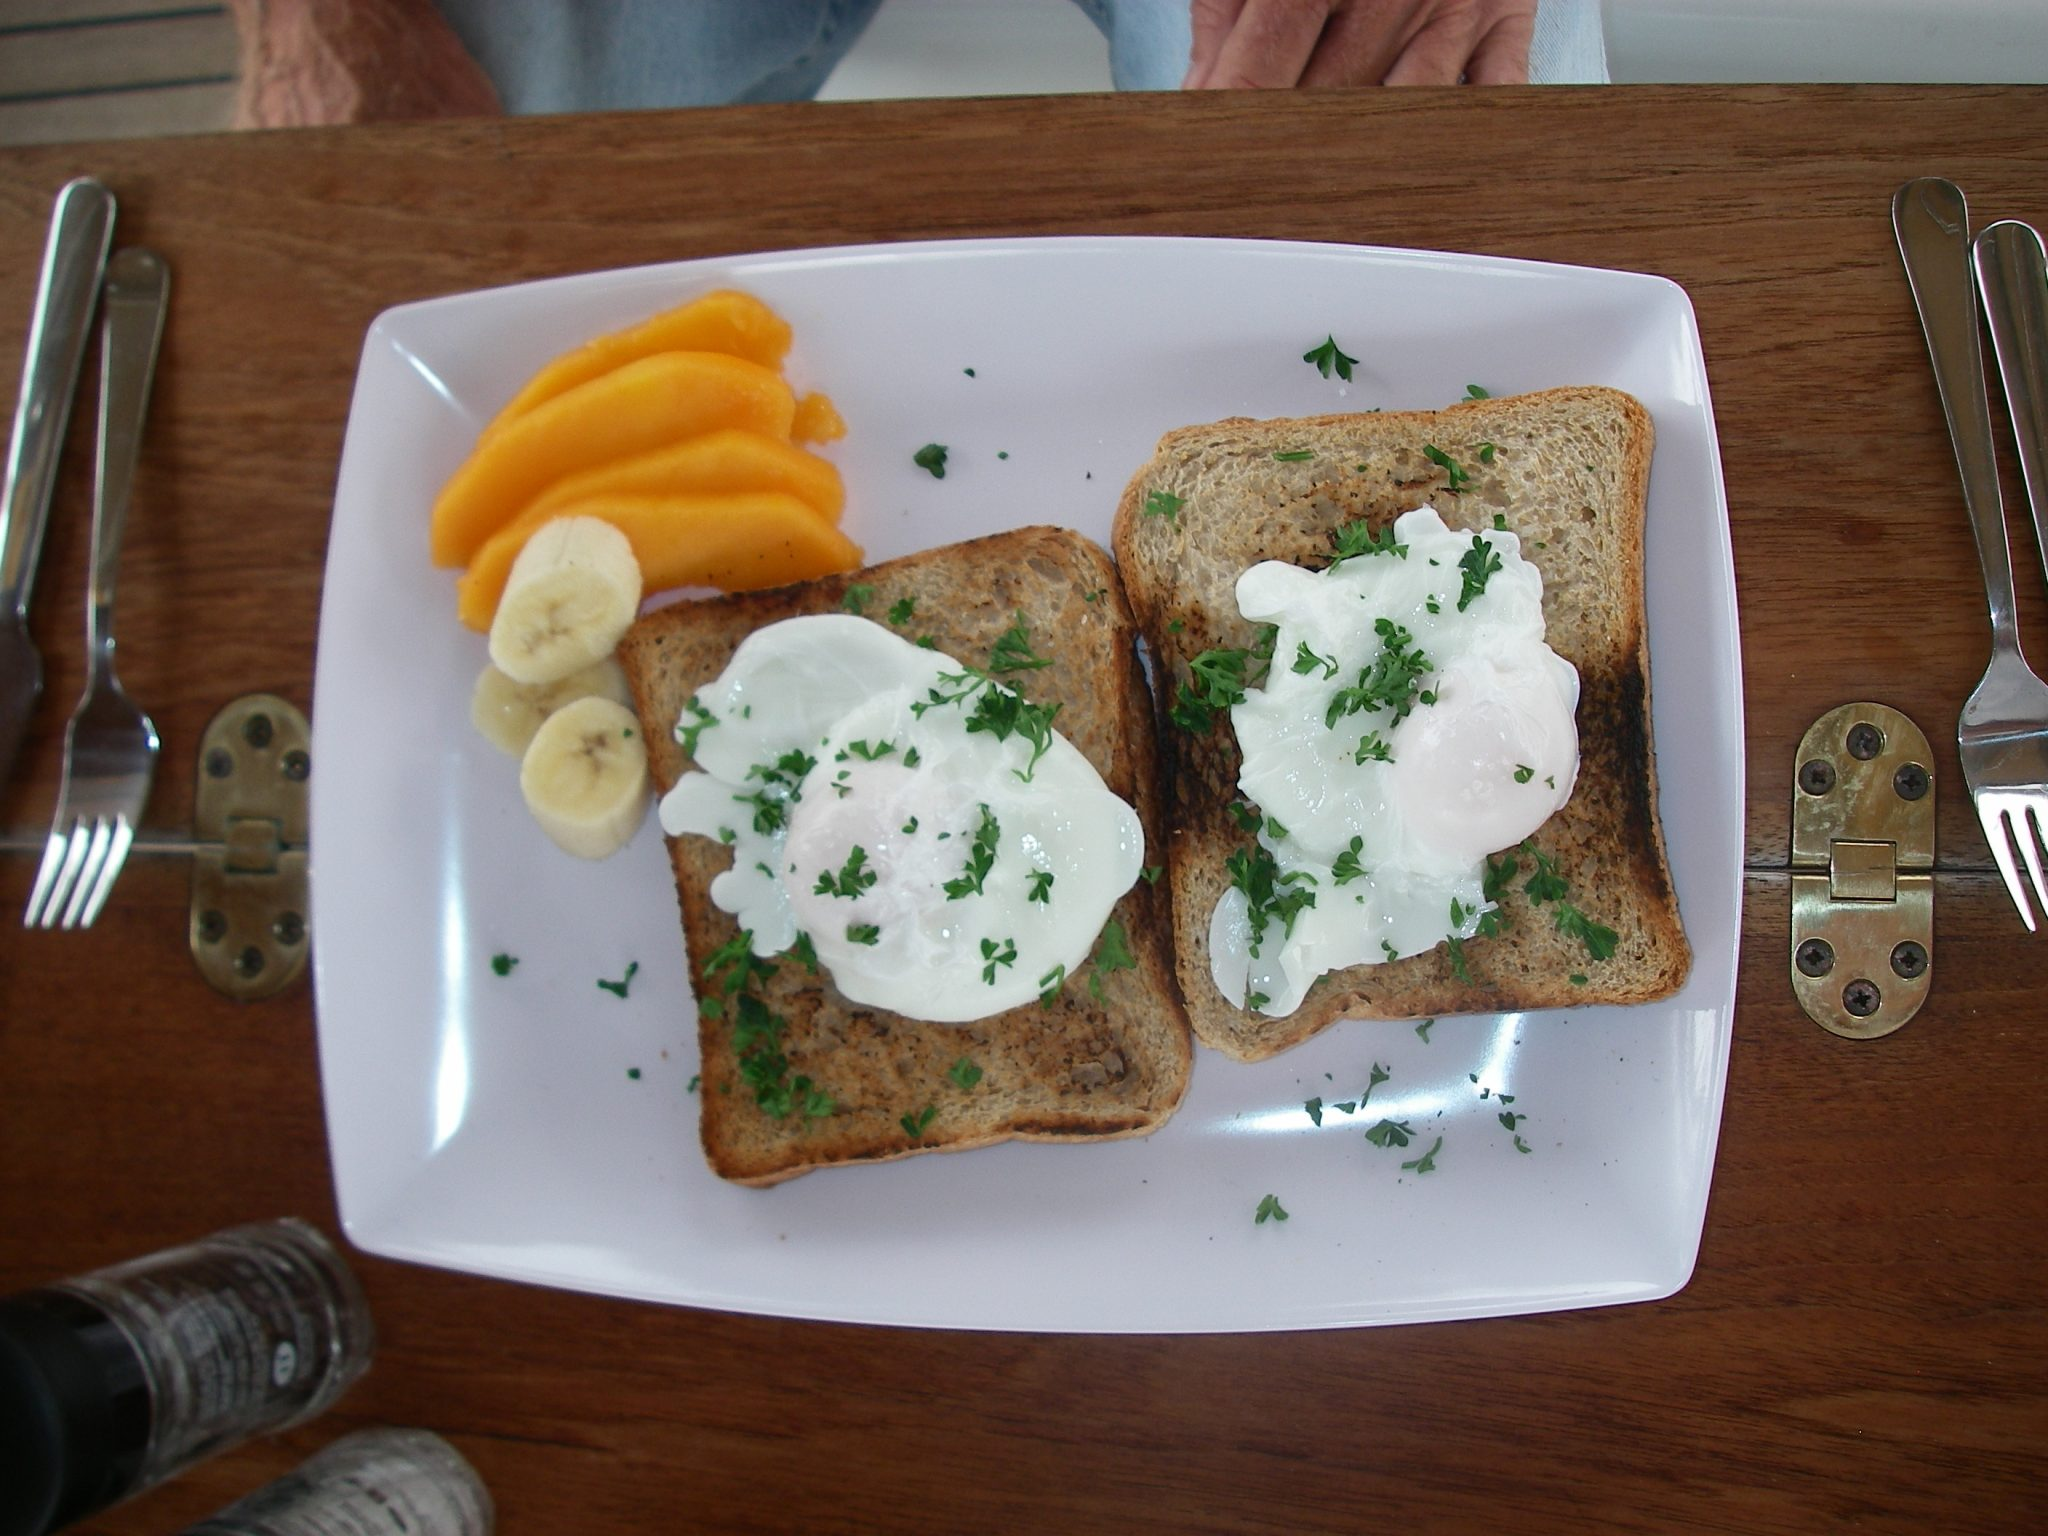 22. Kind Rod made everyone delicious poached eggs with parsley